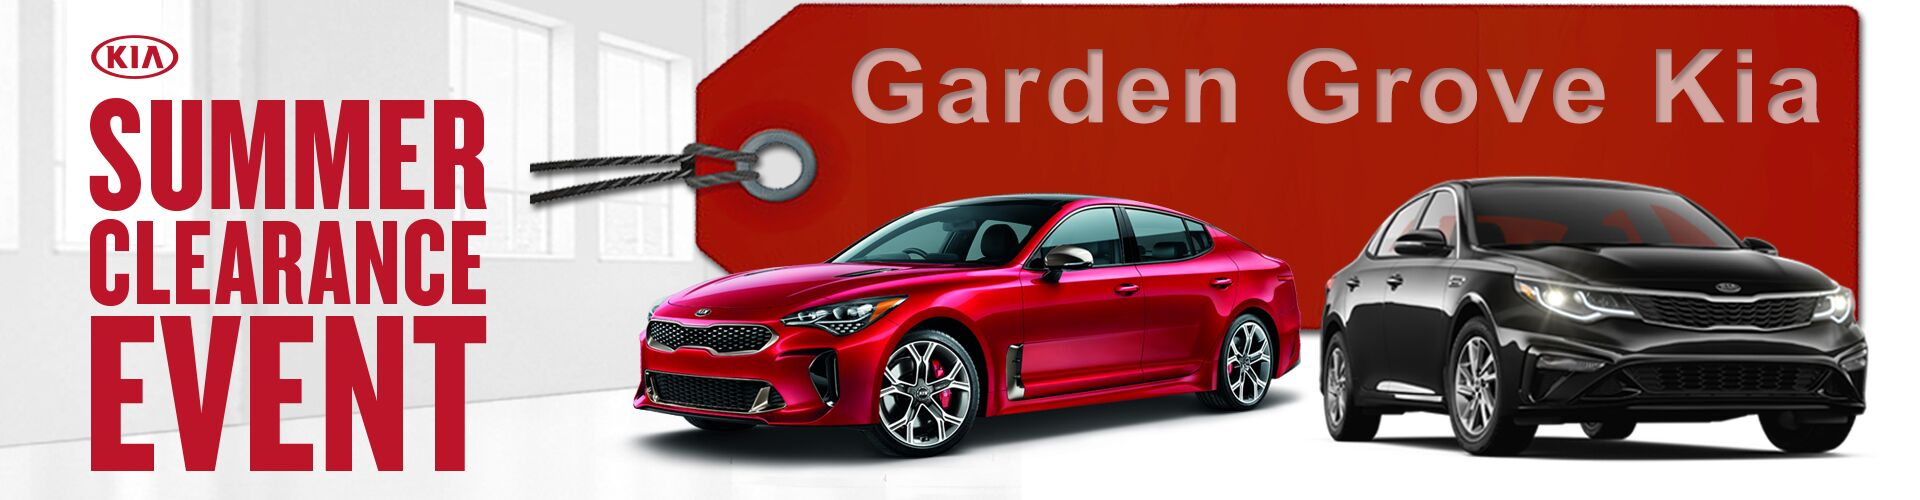 Kia Dealership Garden Grove CA Used Cars Garden Grove Kia